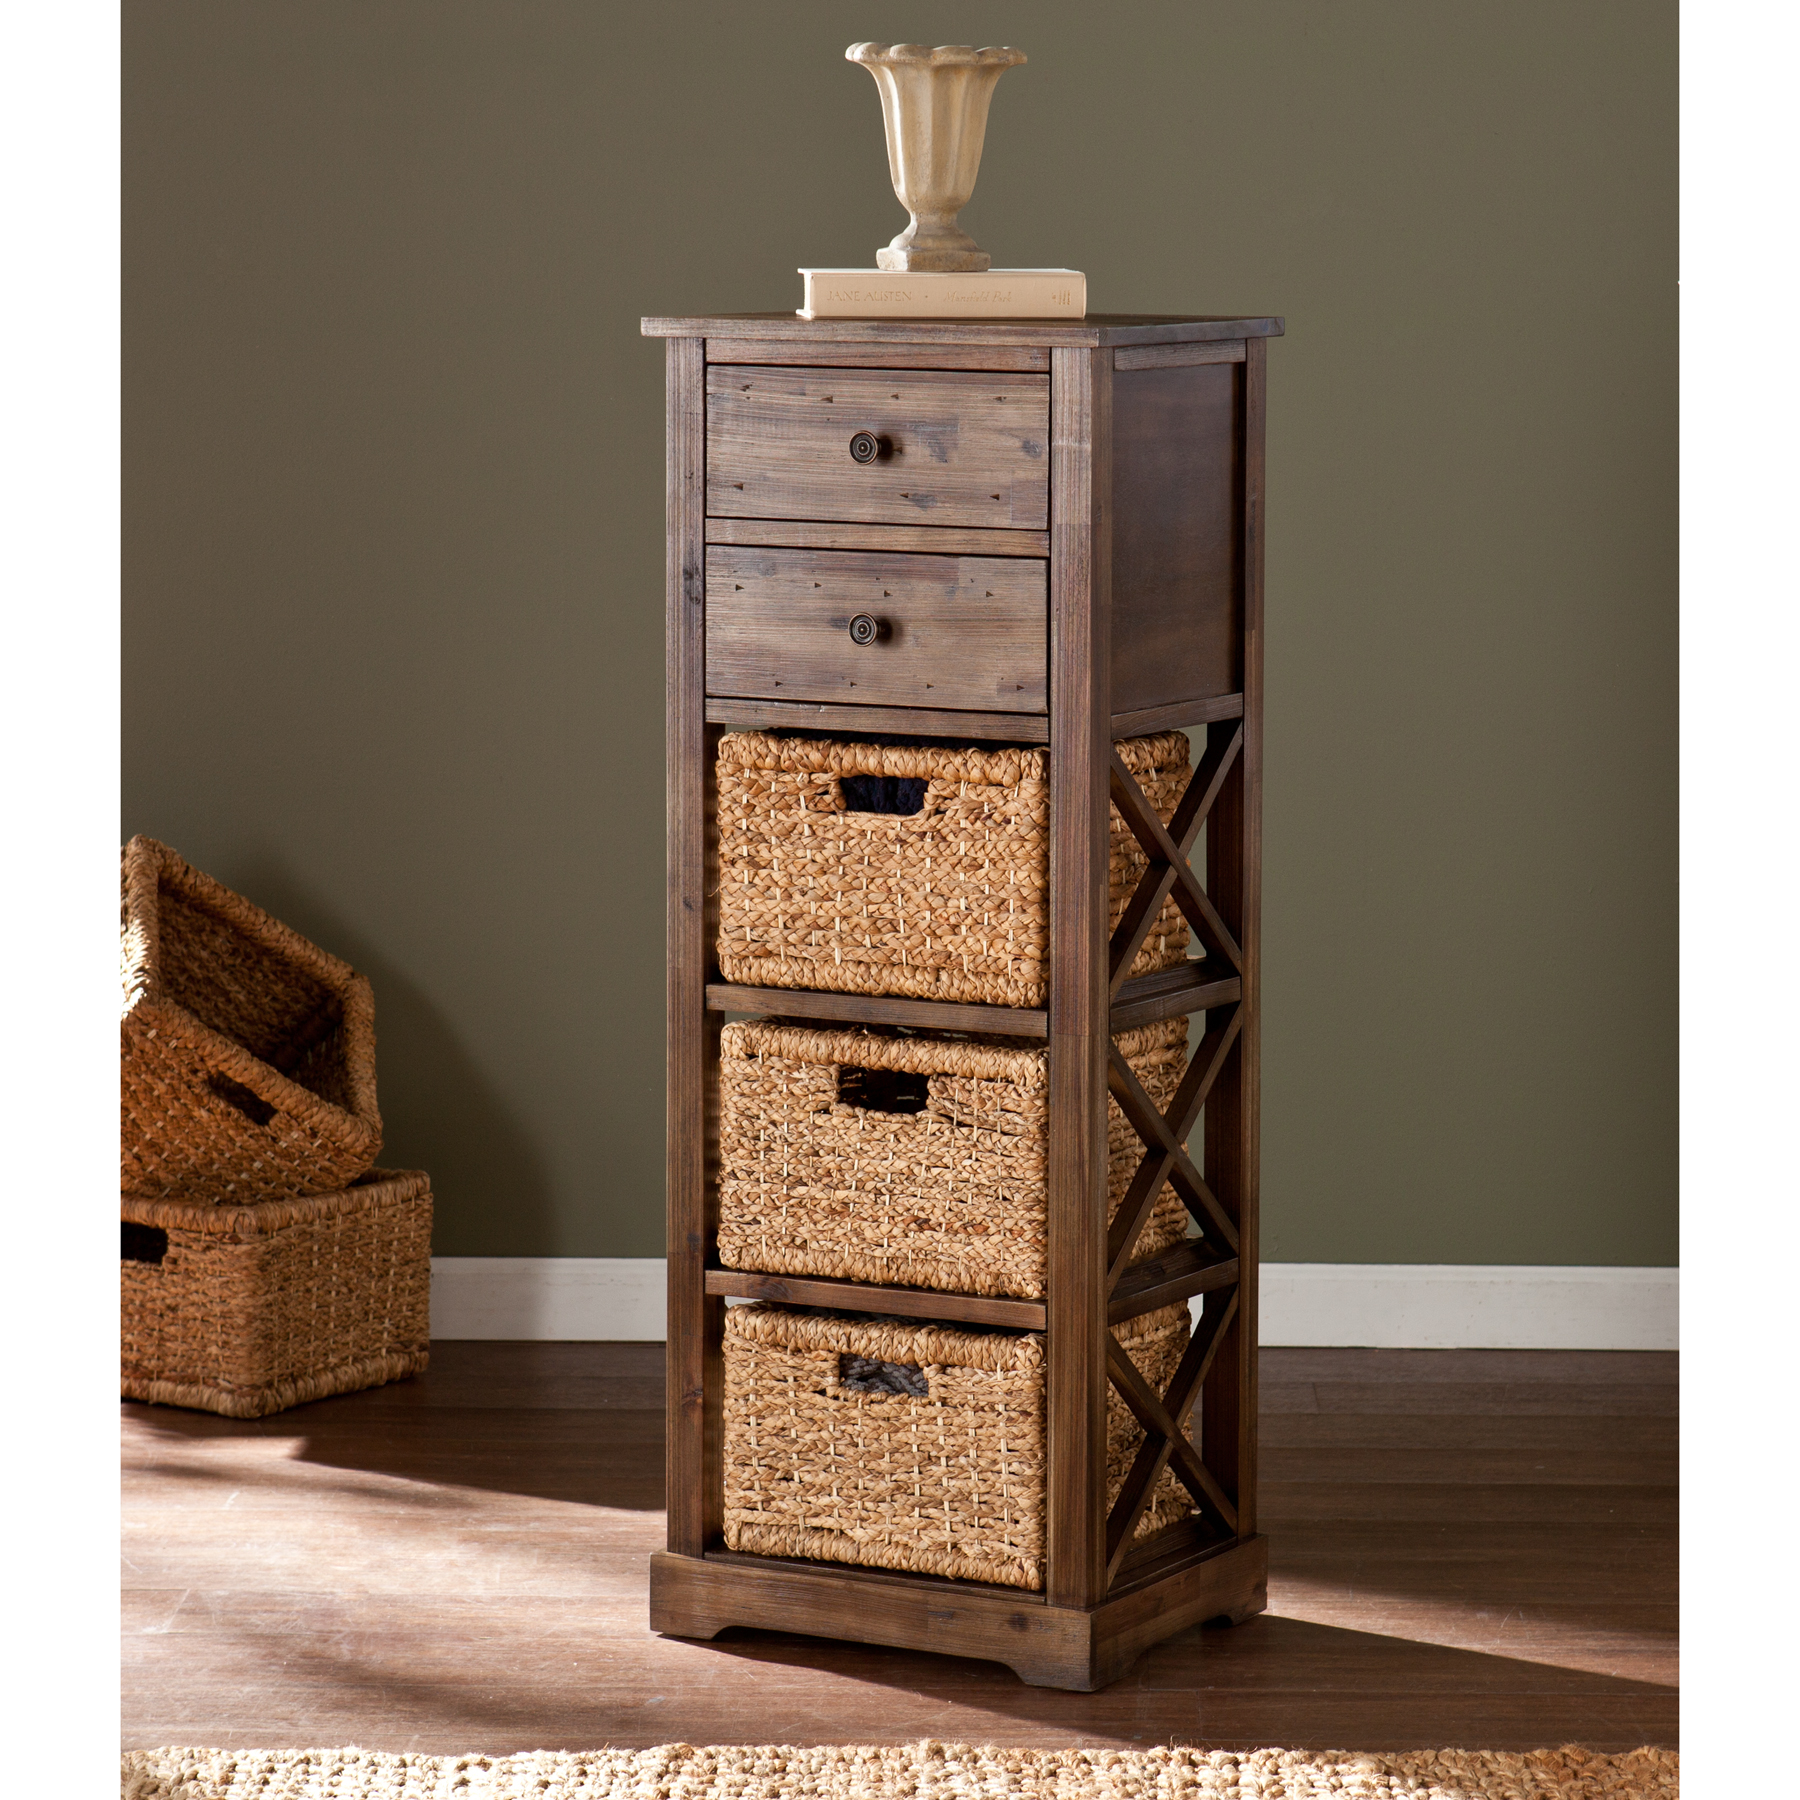 & Jayton 3-Basket Storage Tower